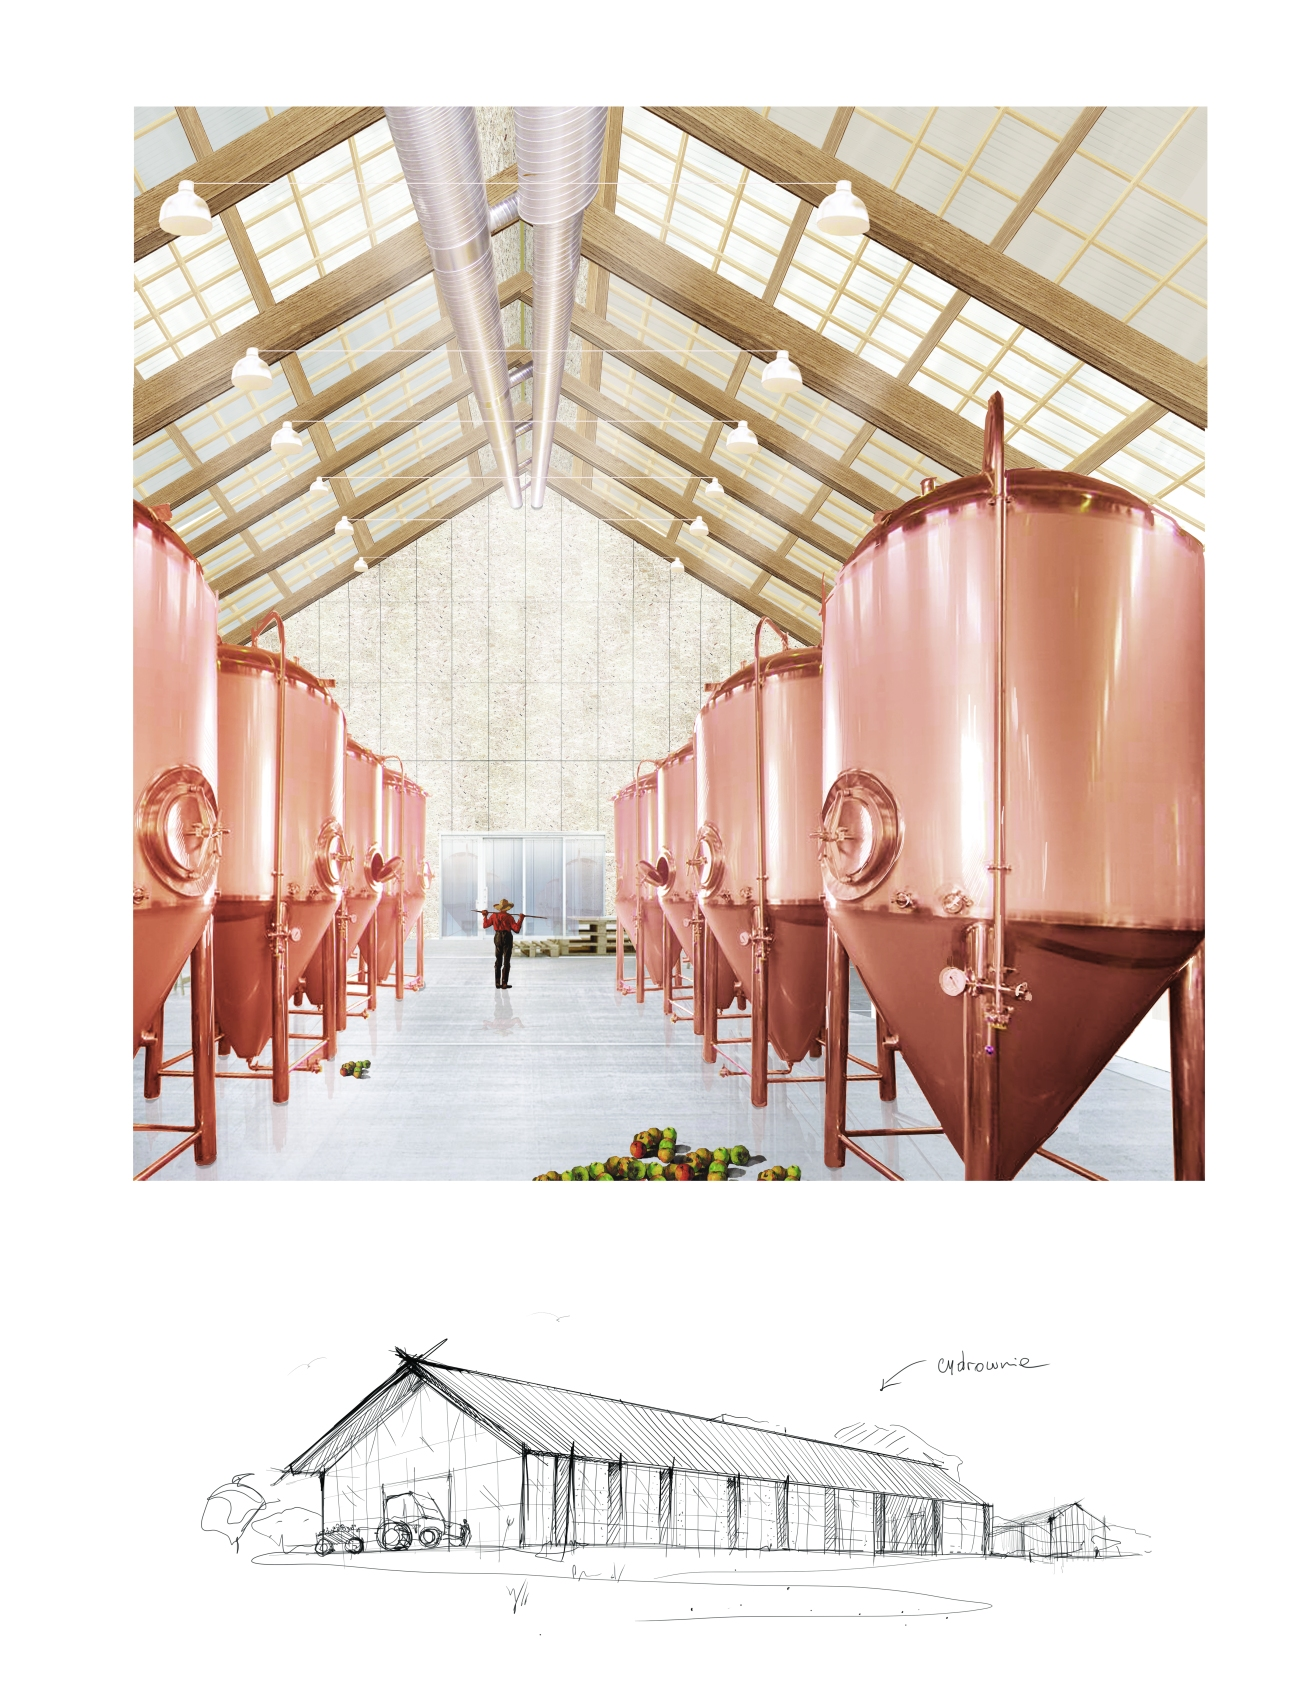 Orchard farm with cider factory,Sonia Dubois,student,4th year,University of Arts Poznan, bachelor of architecture_4.jpg